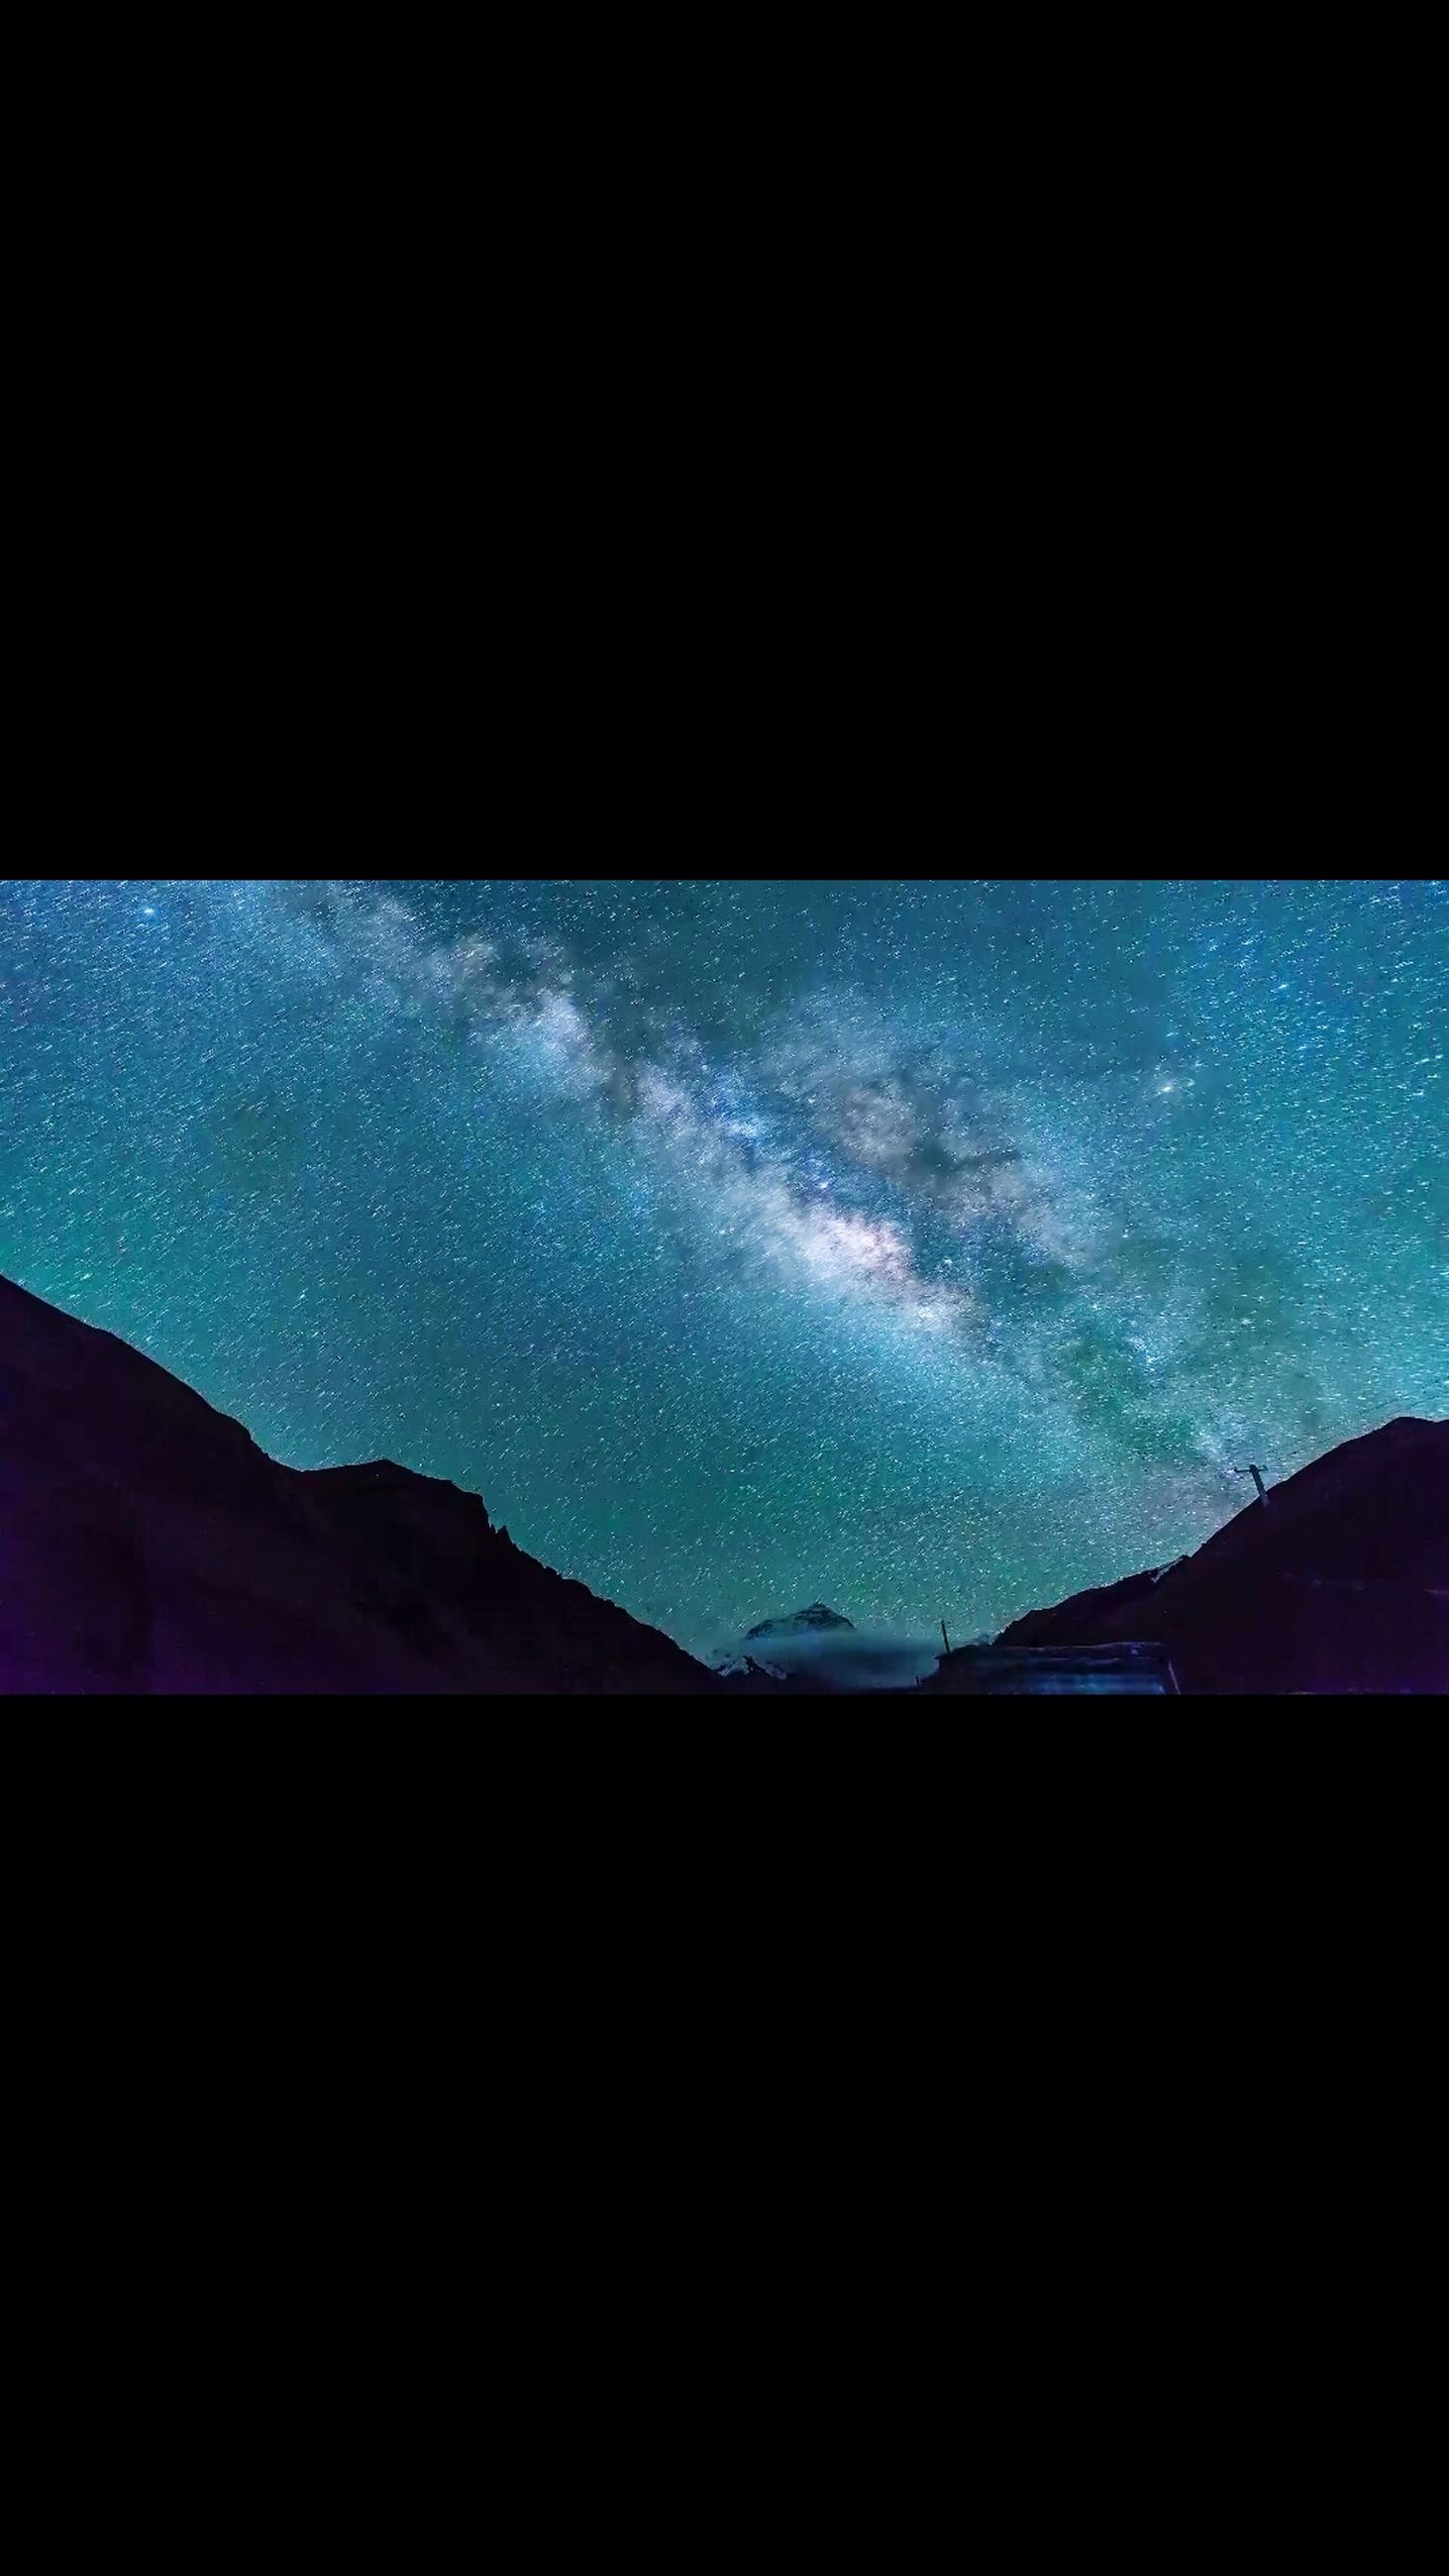 night, blue, space, astronomy, nature, star - space, sky, no people, beauty in nature, scenics, milky way, illuminated, galaxy, outdoors, midnight